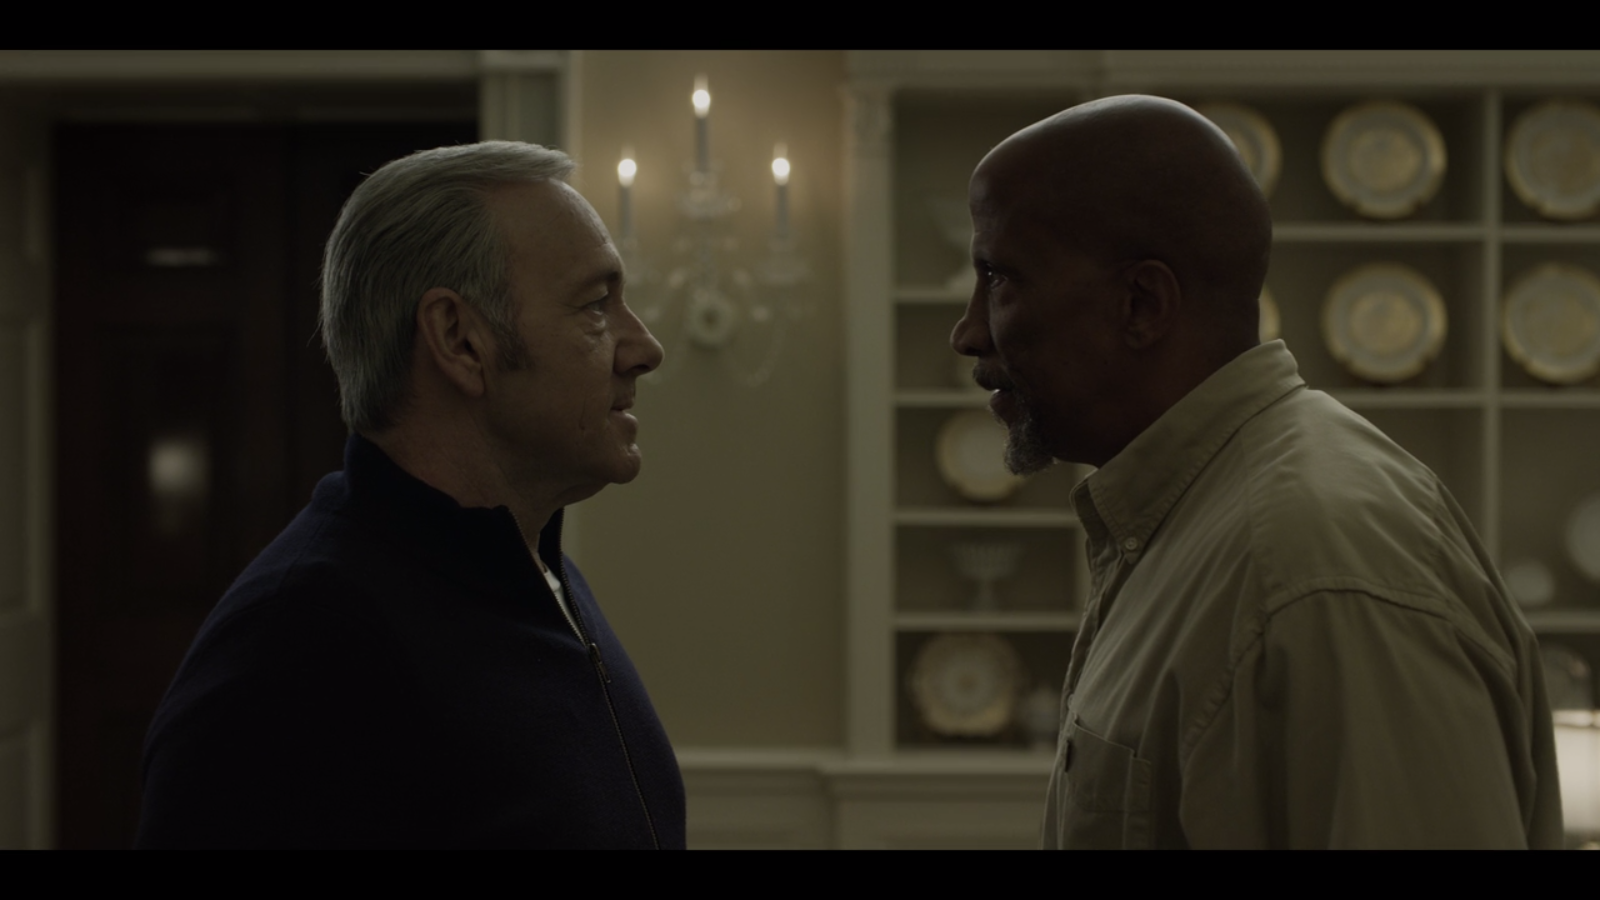 House of Cards 5 Moments – 5_frank backstabs freddy